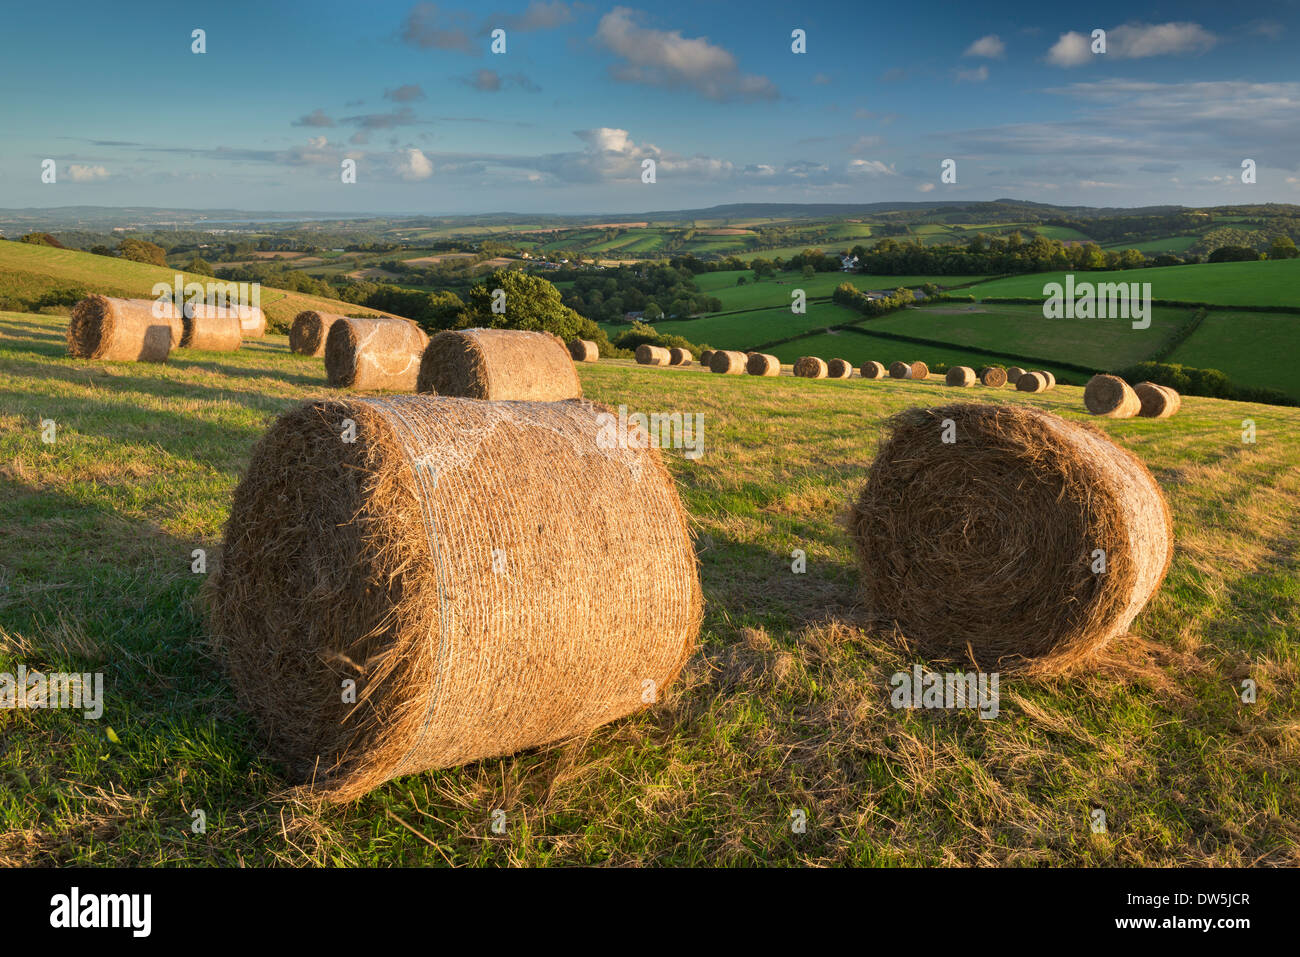 Hay Bales in the rolling fields of Mid Devon, England. Autumn (September) 2012. - Stock Image